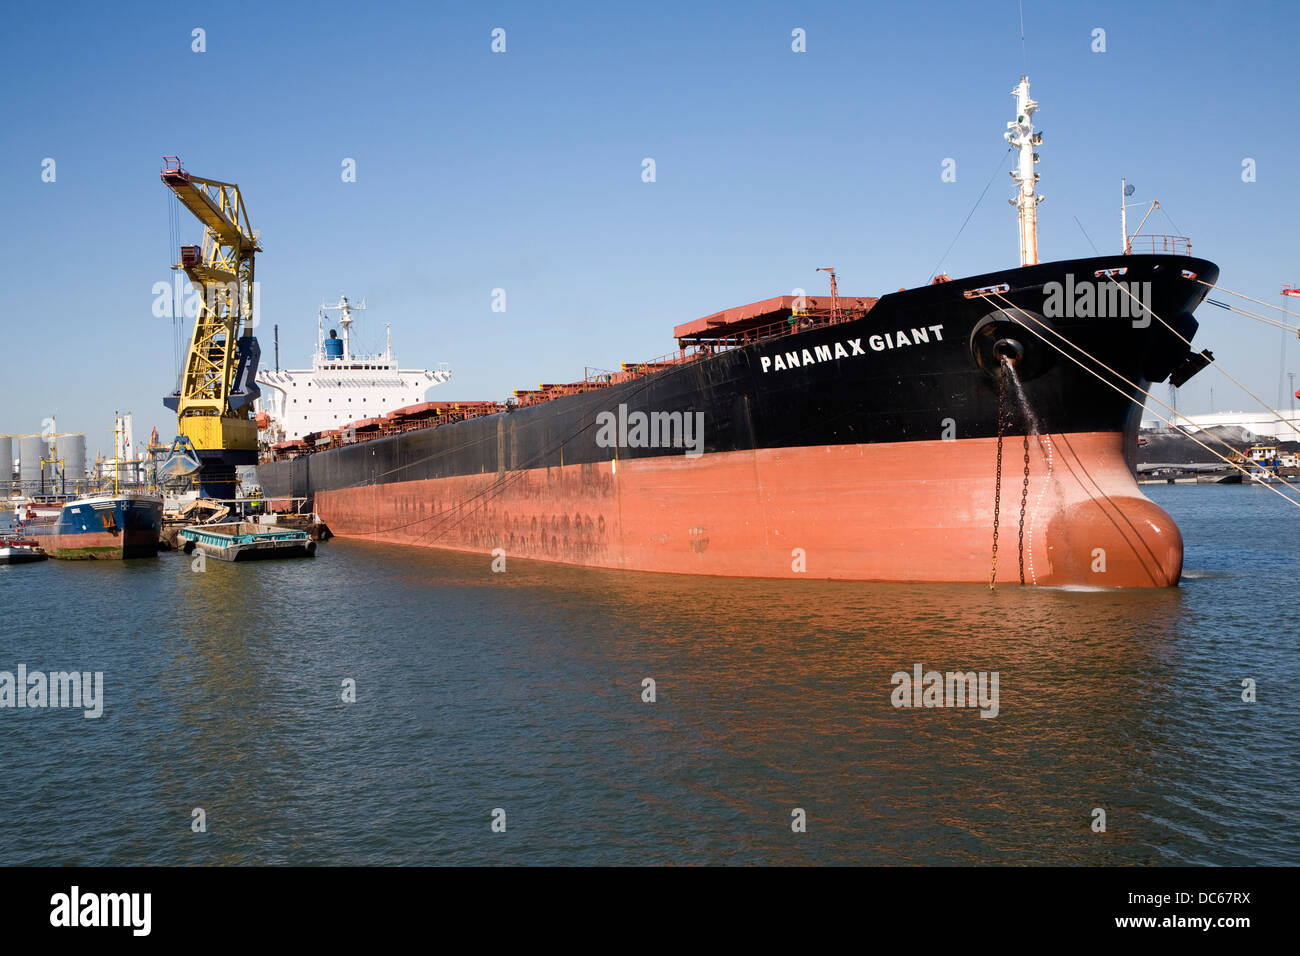 Panamax Giant bulk carrier ship in Botlek Port of Rotterdam, Netherlands - Stock Image